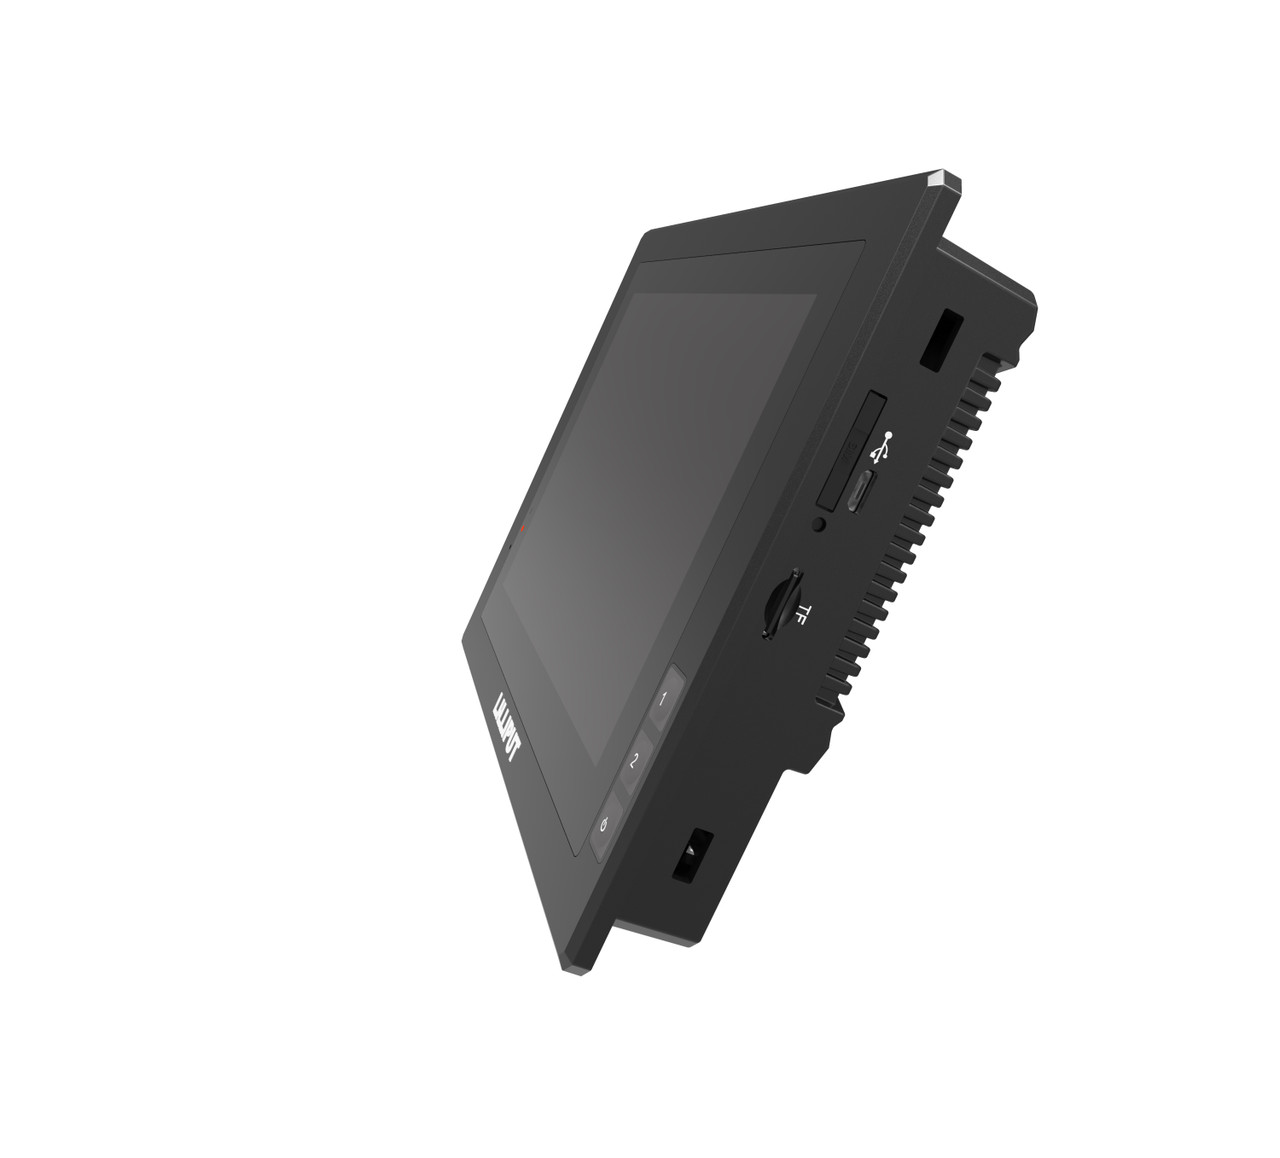 """PC-701 7"""" Embedded Industrial PC"""